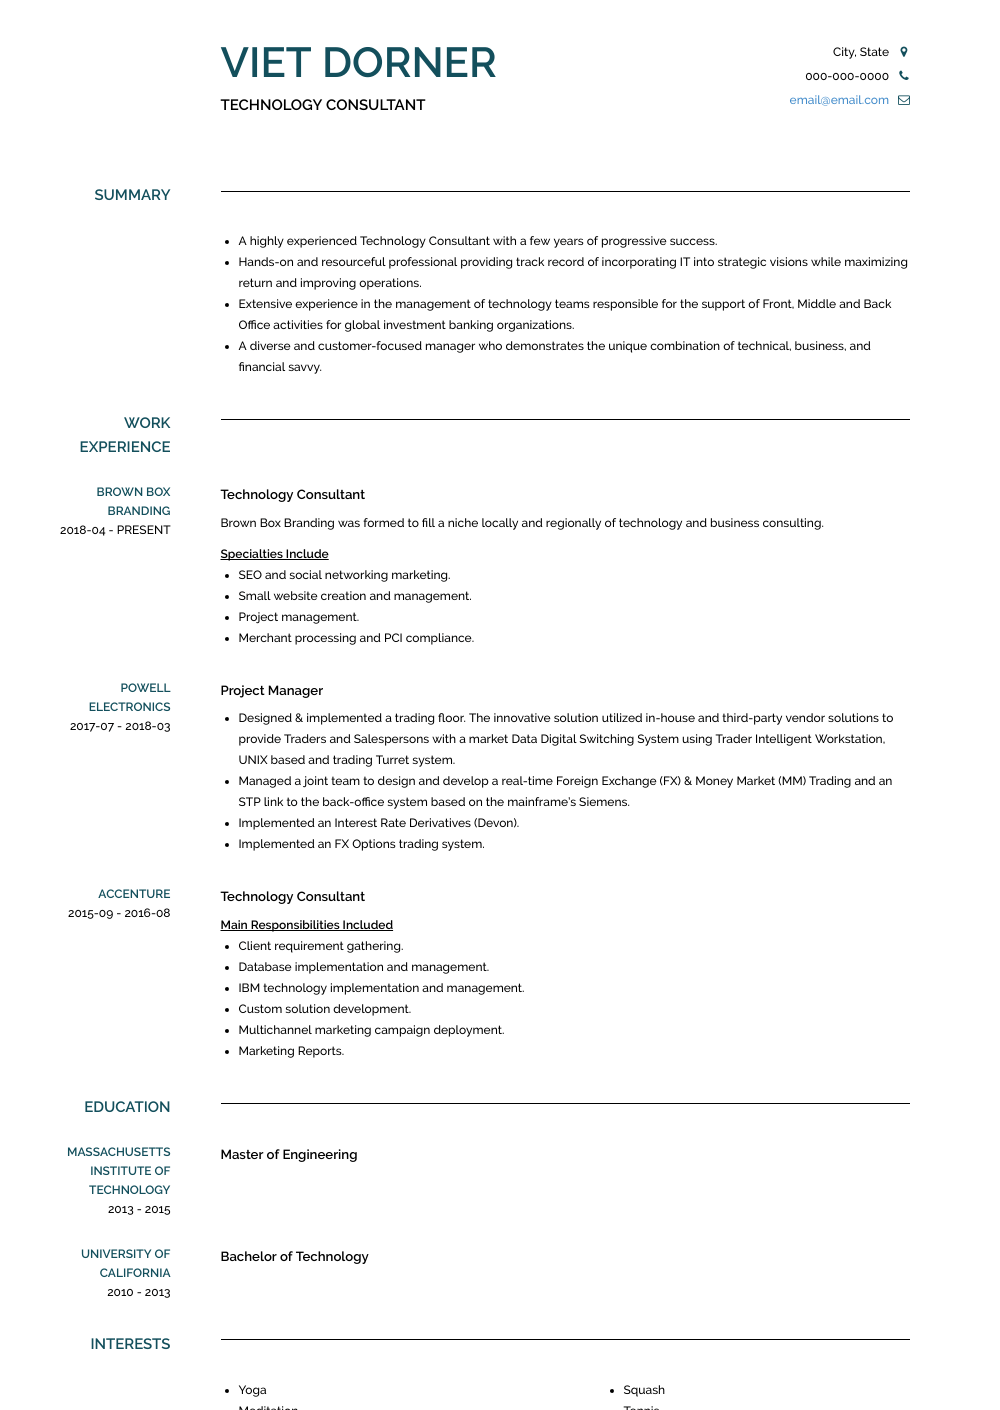 Technology Consultant Resume Samples And Templates Visualcv